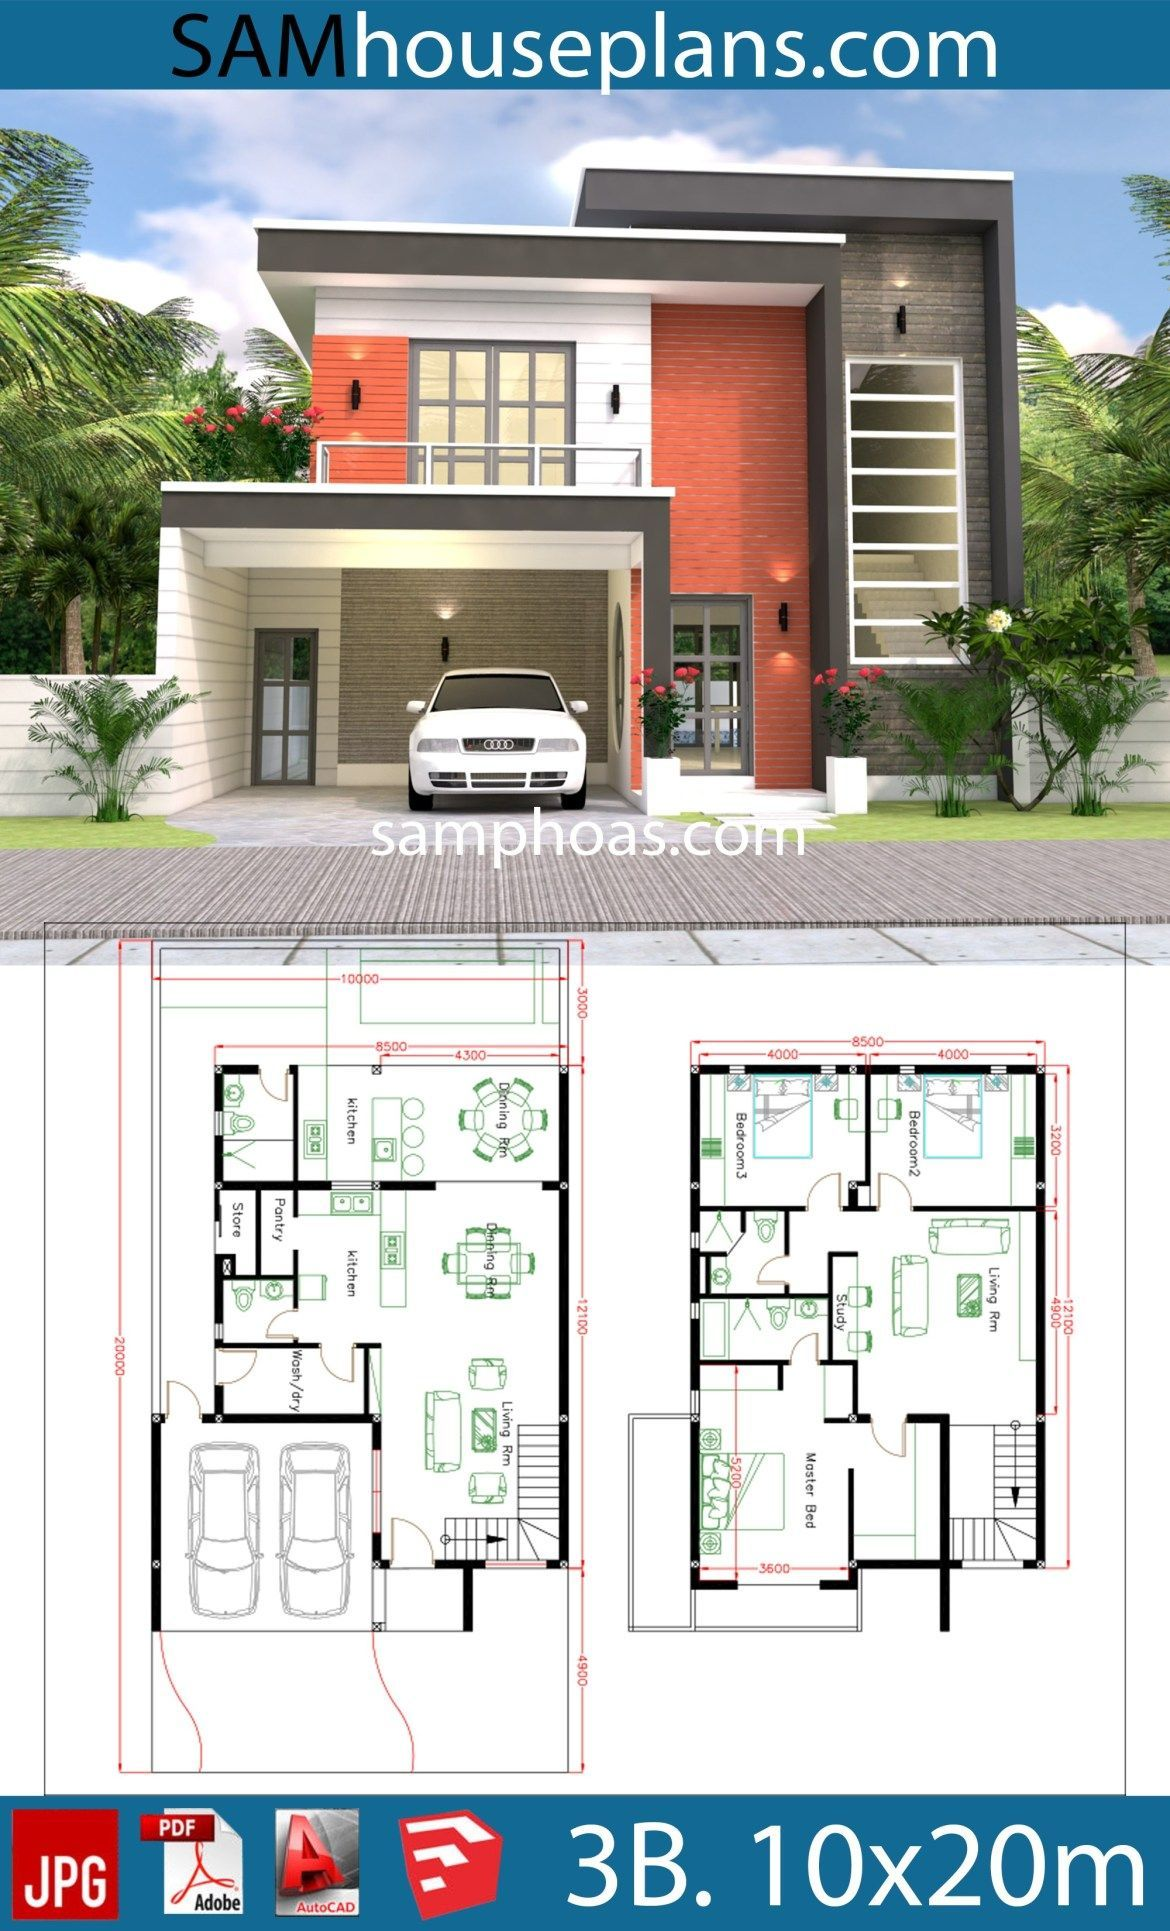 3d House Design Plans With 3 Bedrooms Plot 10x20m Samphoas Plansearch Dekoration Hausdekor Wohnideen Sc Haus Design Haus Design Plane Eigenheim Grundriss